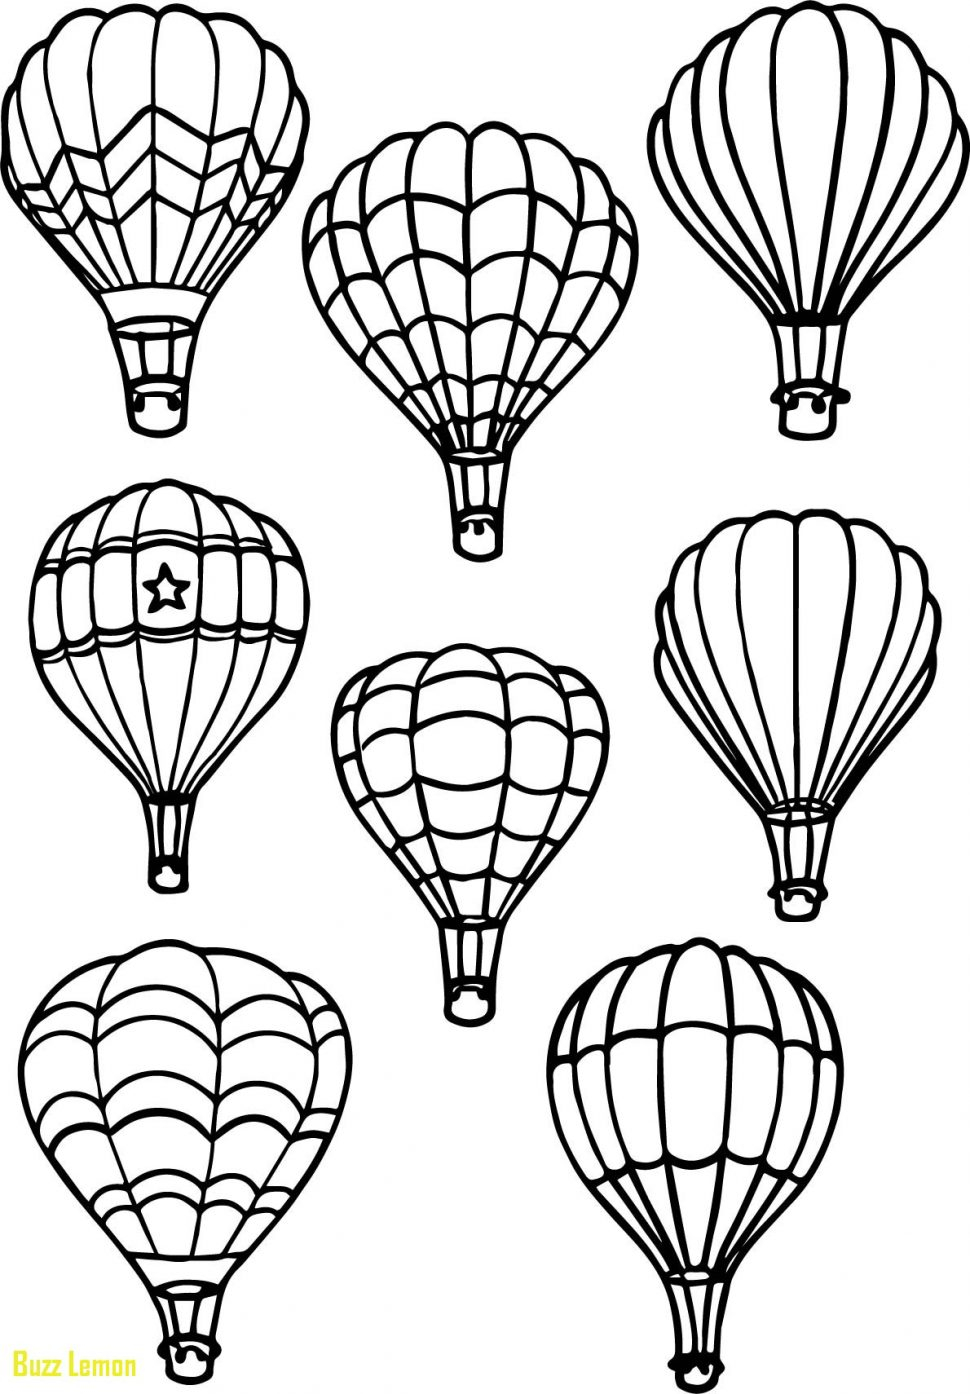 Coloring Books and Pages astonishing Hot Air Balloonring Pages Gallery Of Hot Air Balloon Coloring Page Collection